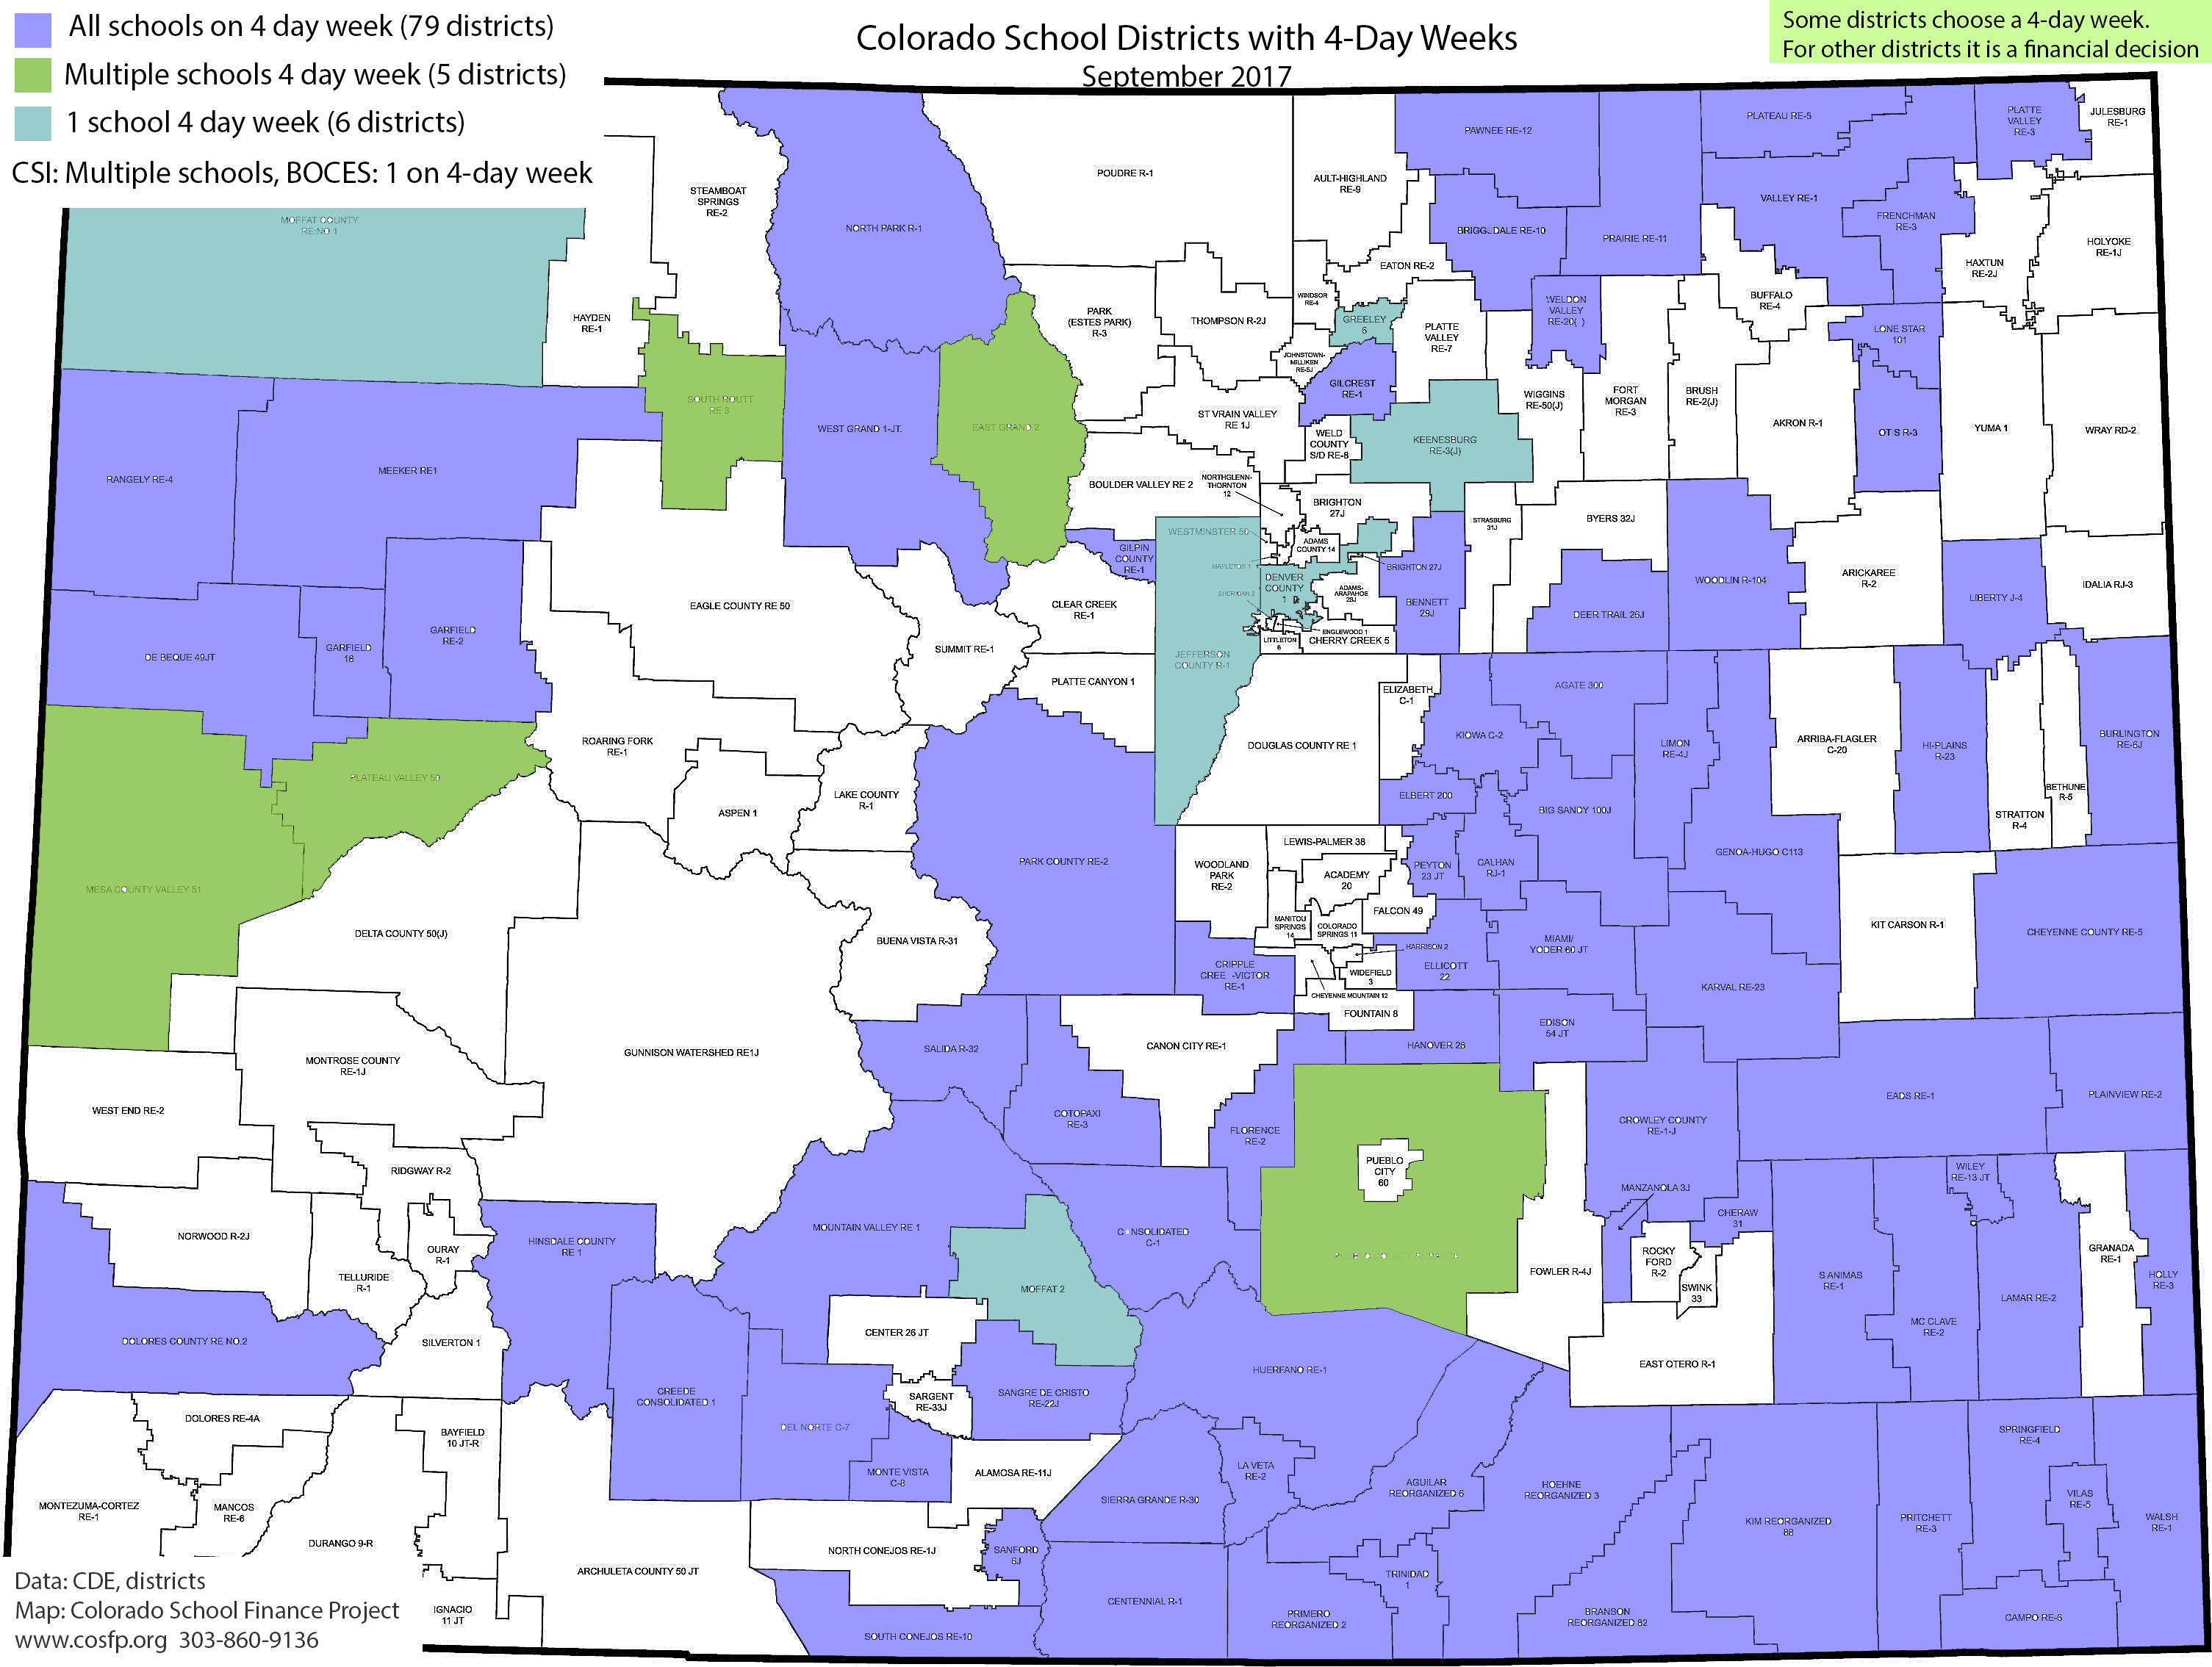 Colorado School District Maps - Colorado School Finance Project